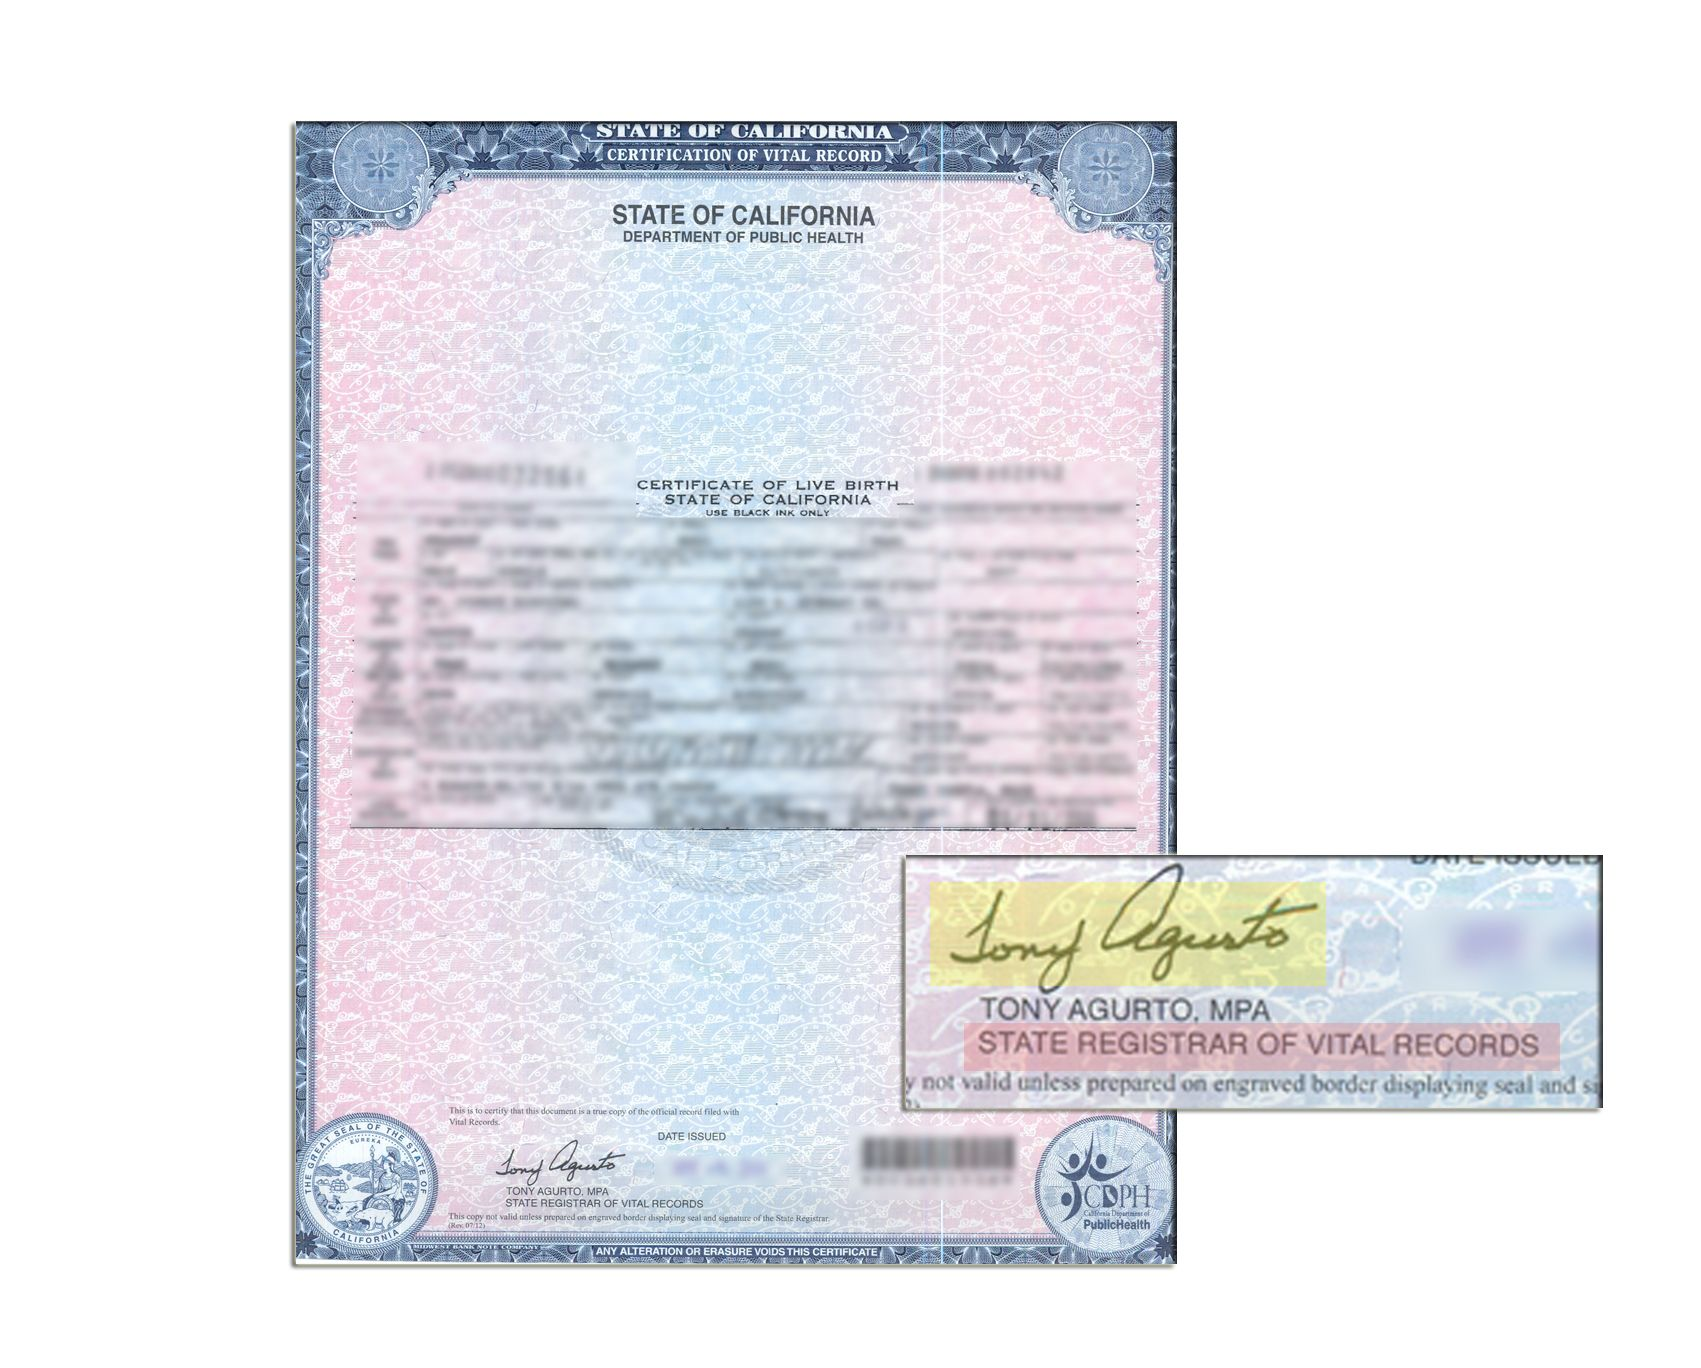 Los angeles certificate of live birth signed by beatriz valdez los angeles certificate of live birth signed by beatriz valdez registrar recorder state of california sample apostille pinterest aiddatafo Gallery